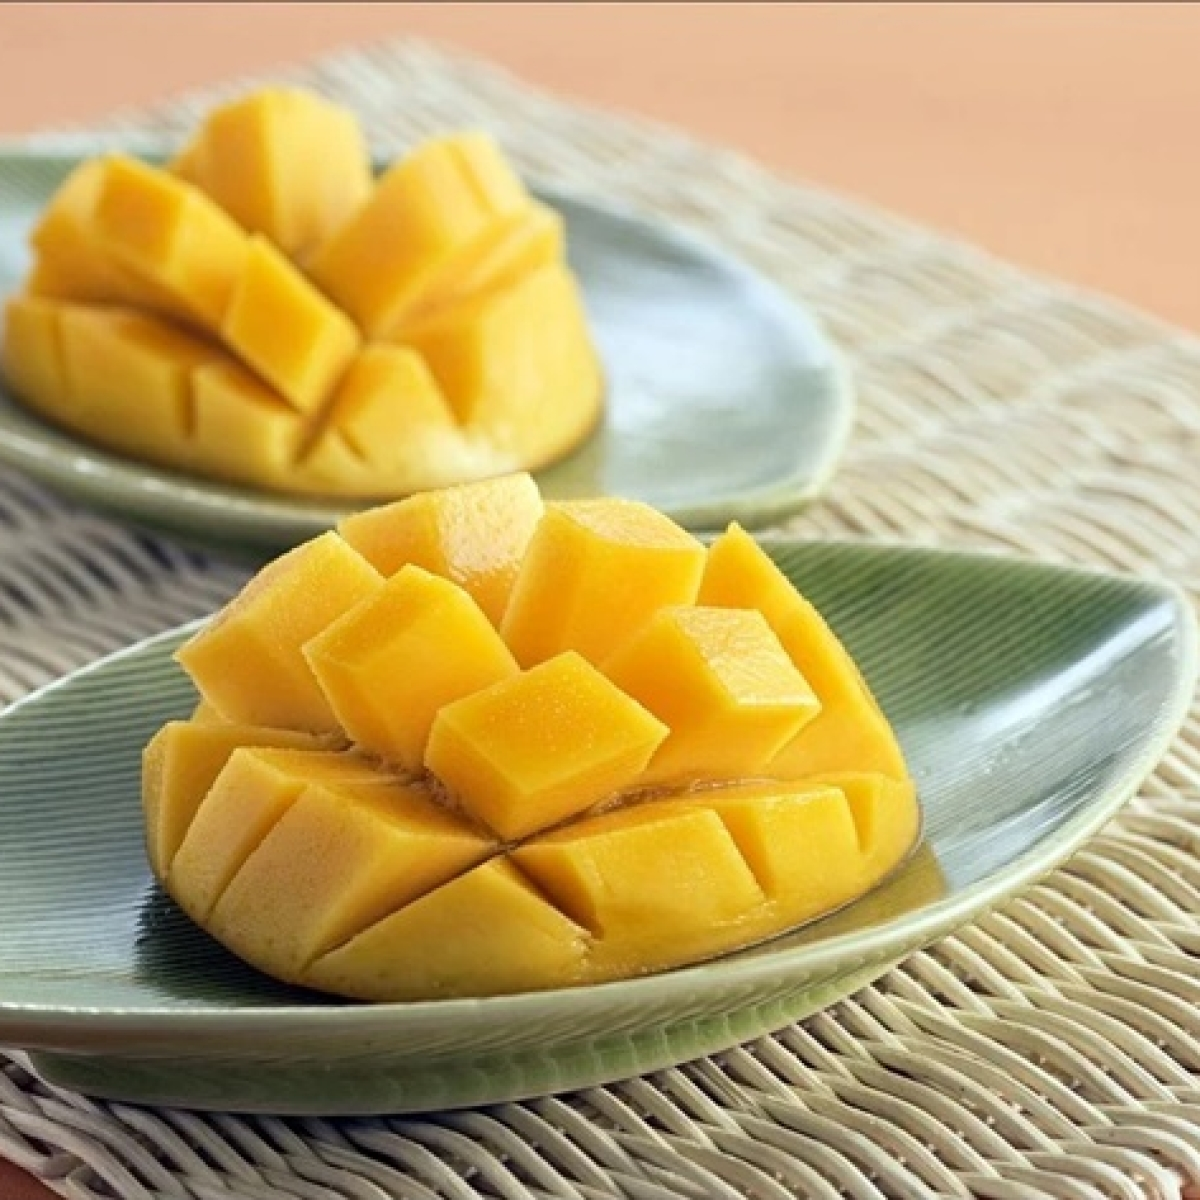 Craving mangoes in Mumbai? Here's how you can get the king of fruits delivered during lockdown